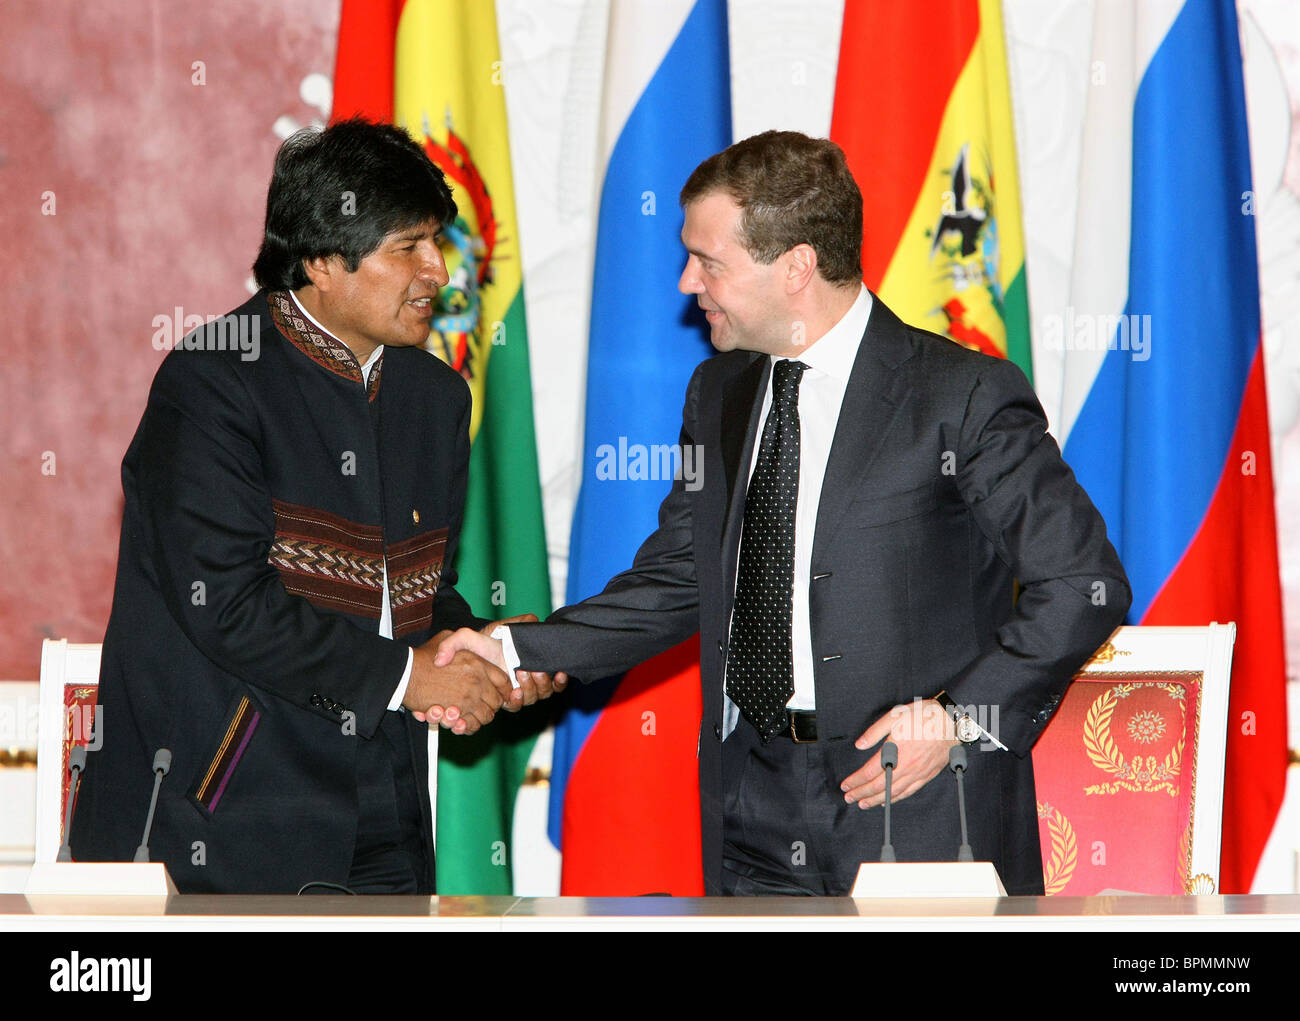 Presidents of Russia and Bolivia meet for talks - Stock Image